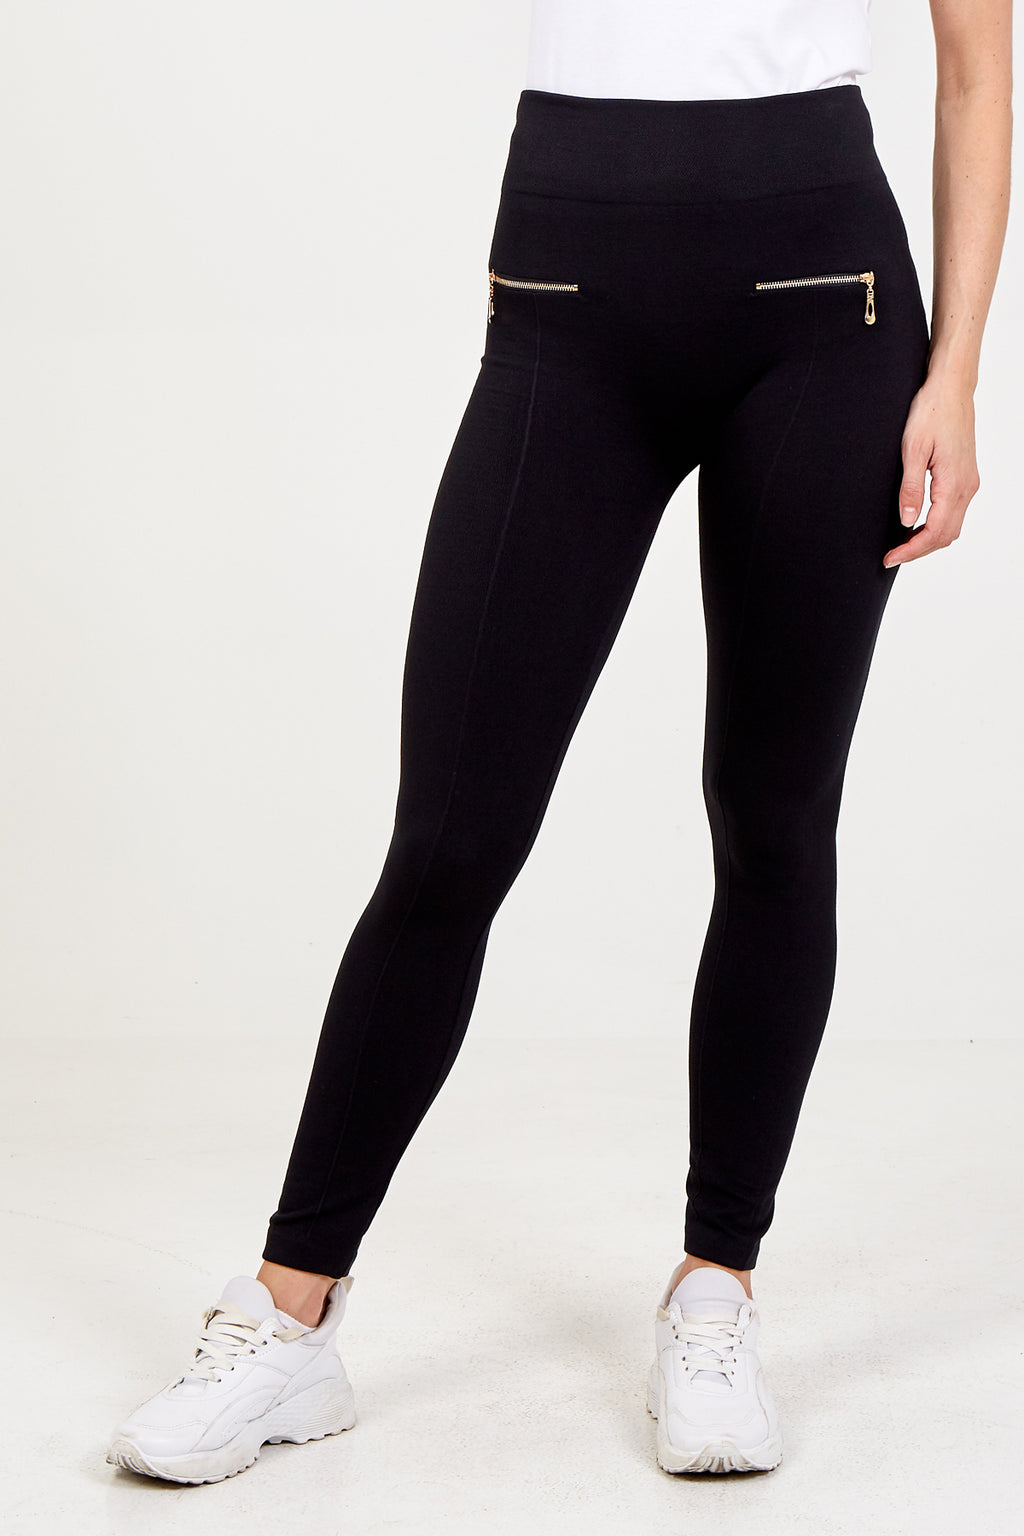 Fleeced Leggings With Gold Front Zip Pockets